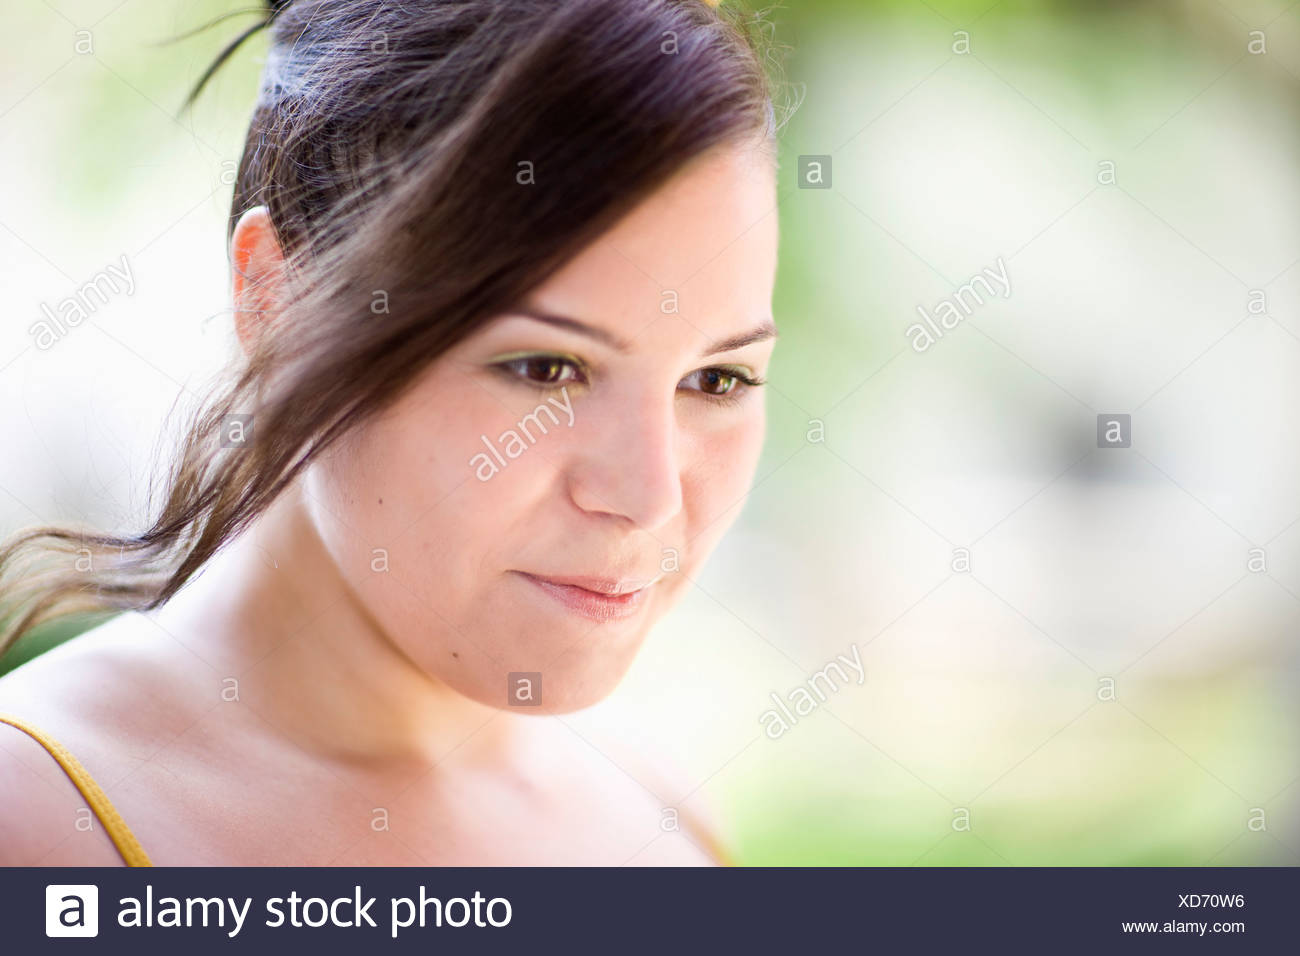 portrait of a young plump girl - Stock Image